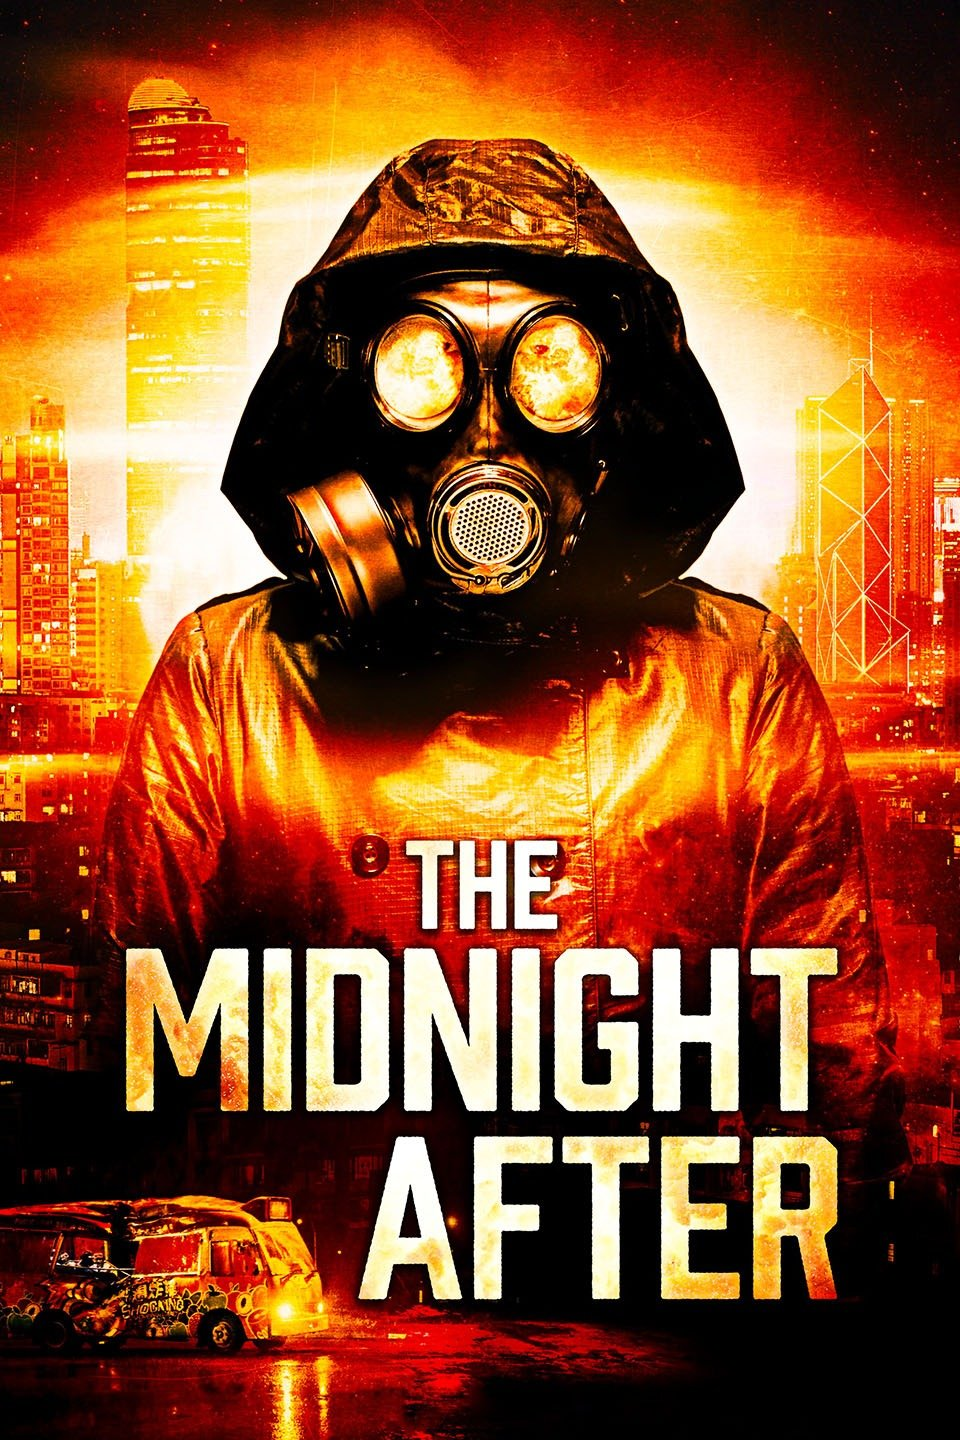 Image result for the midnight after